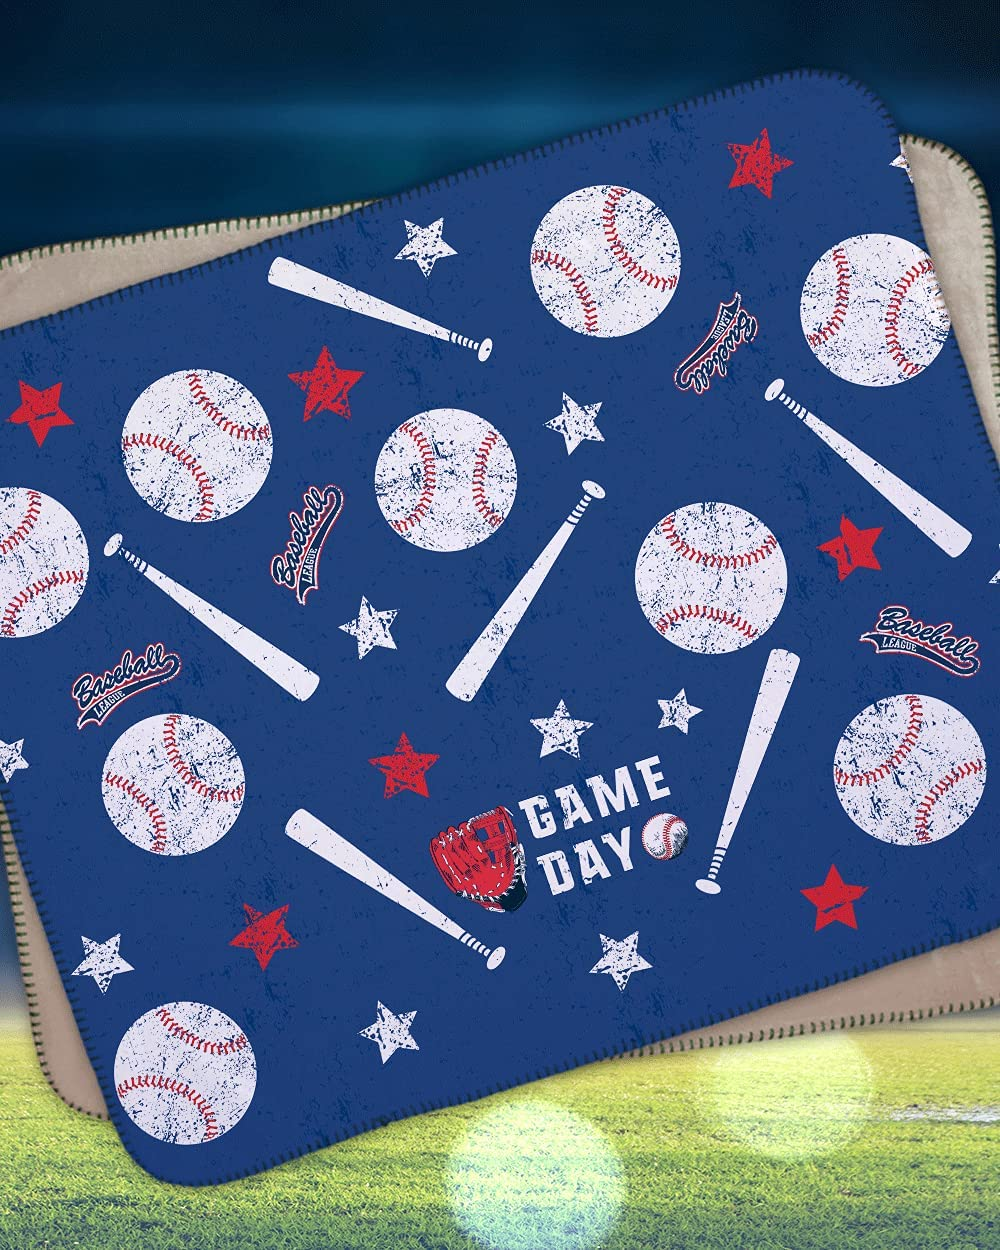 COLORCOMMALL mart Max 68% OFF Personalized Custom Throw Blanket - 40x30 Flee Inch